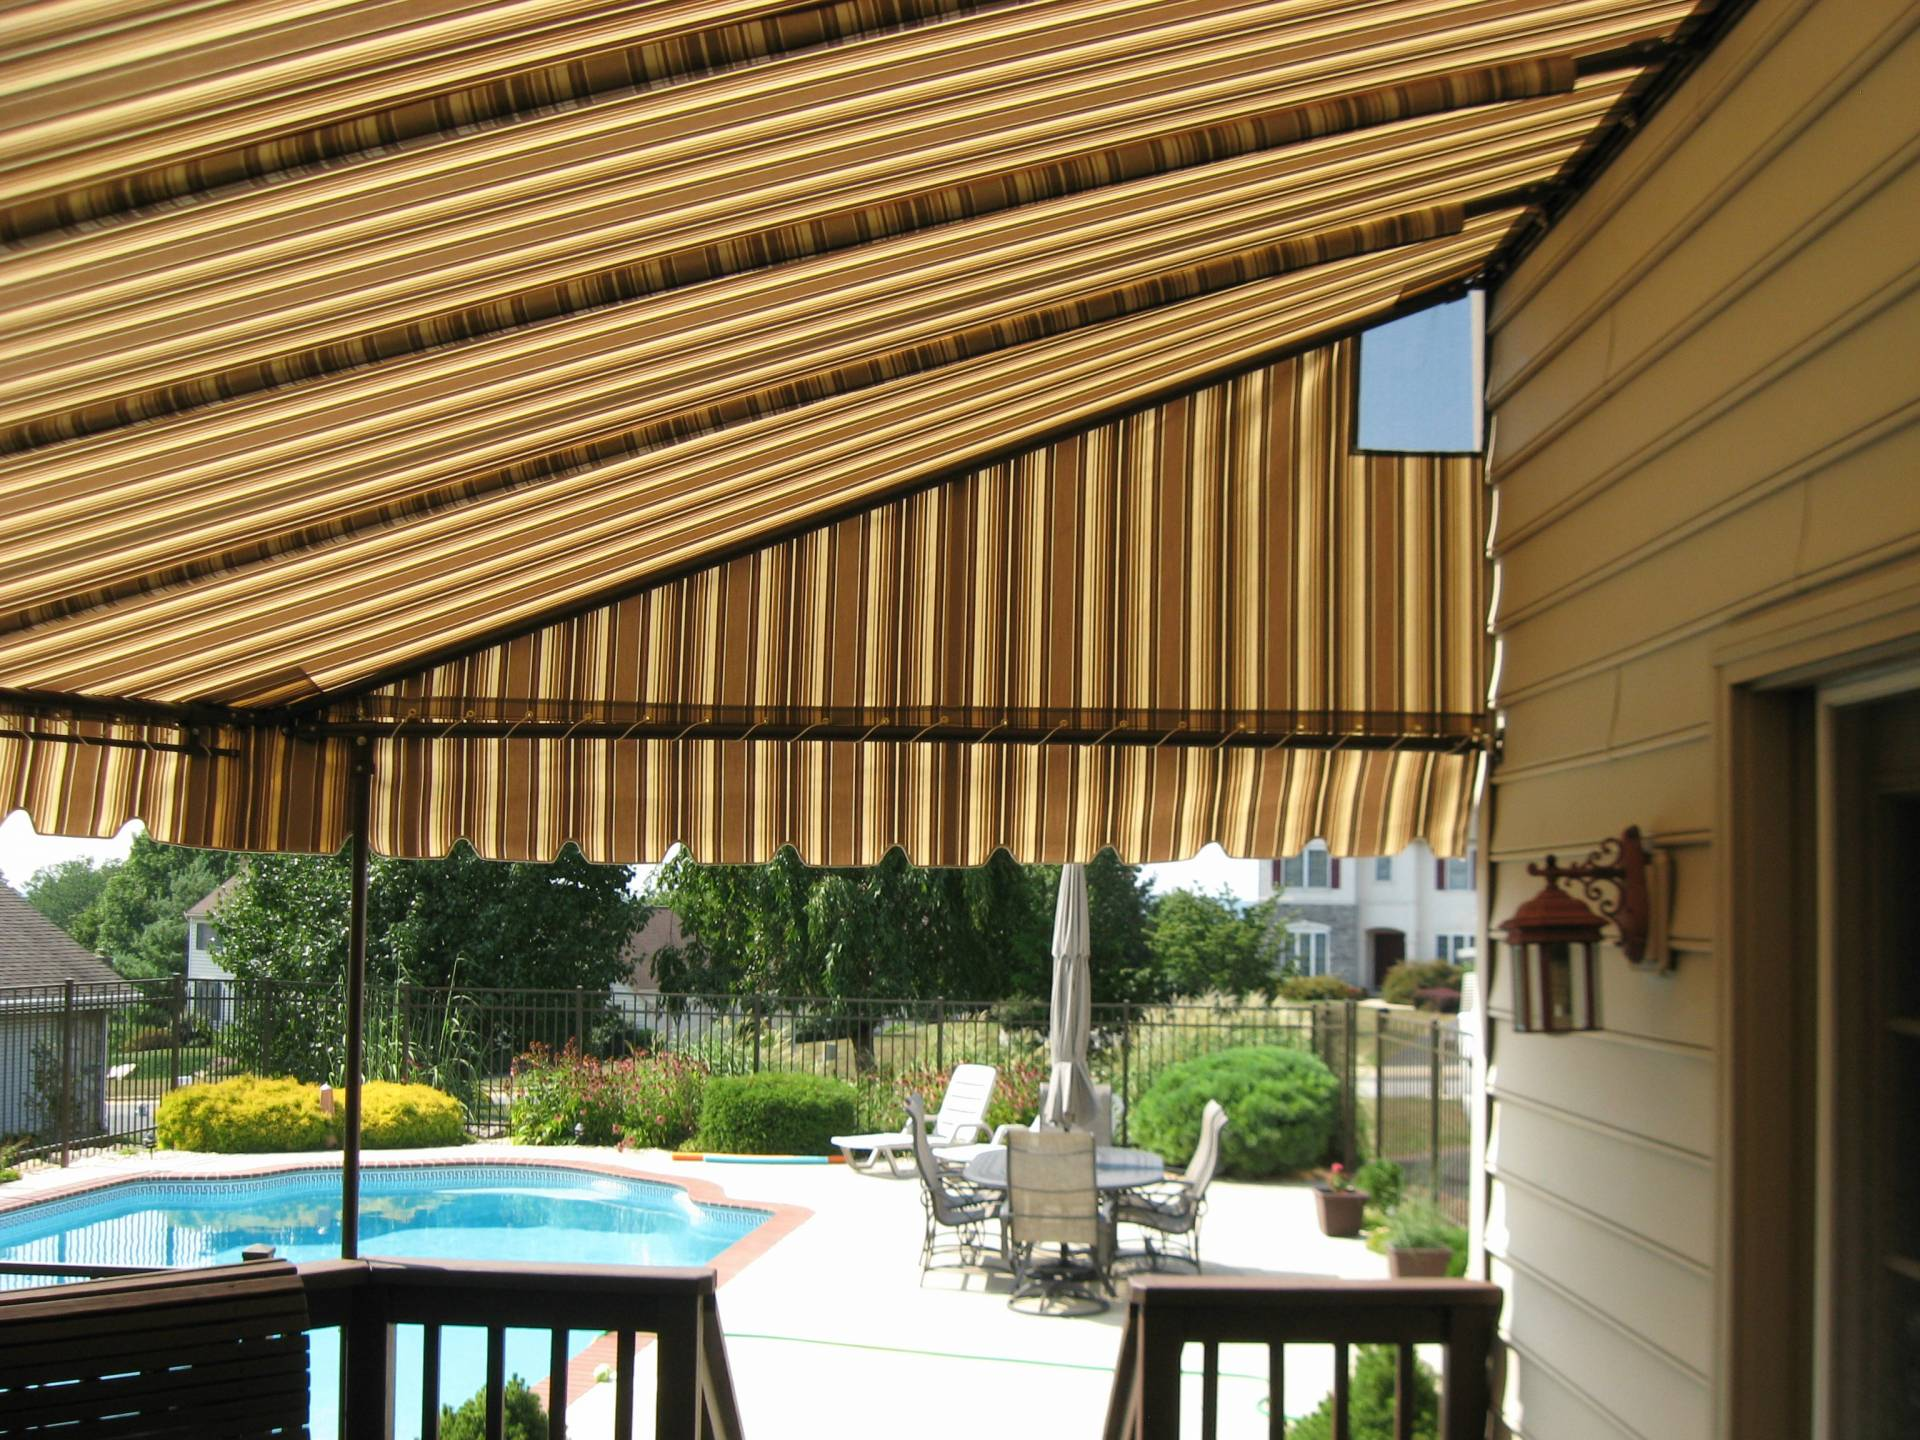 Stationary Canopy Your Canopy Will Stay Cooler With A